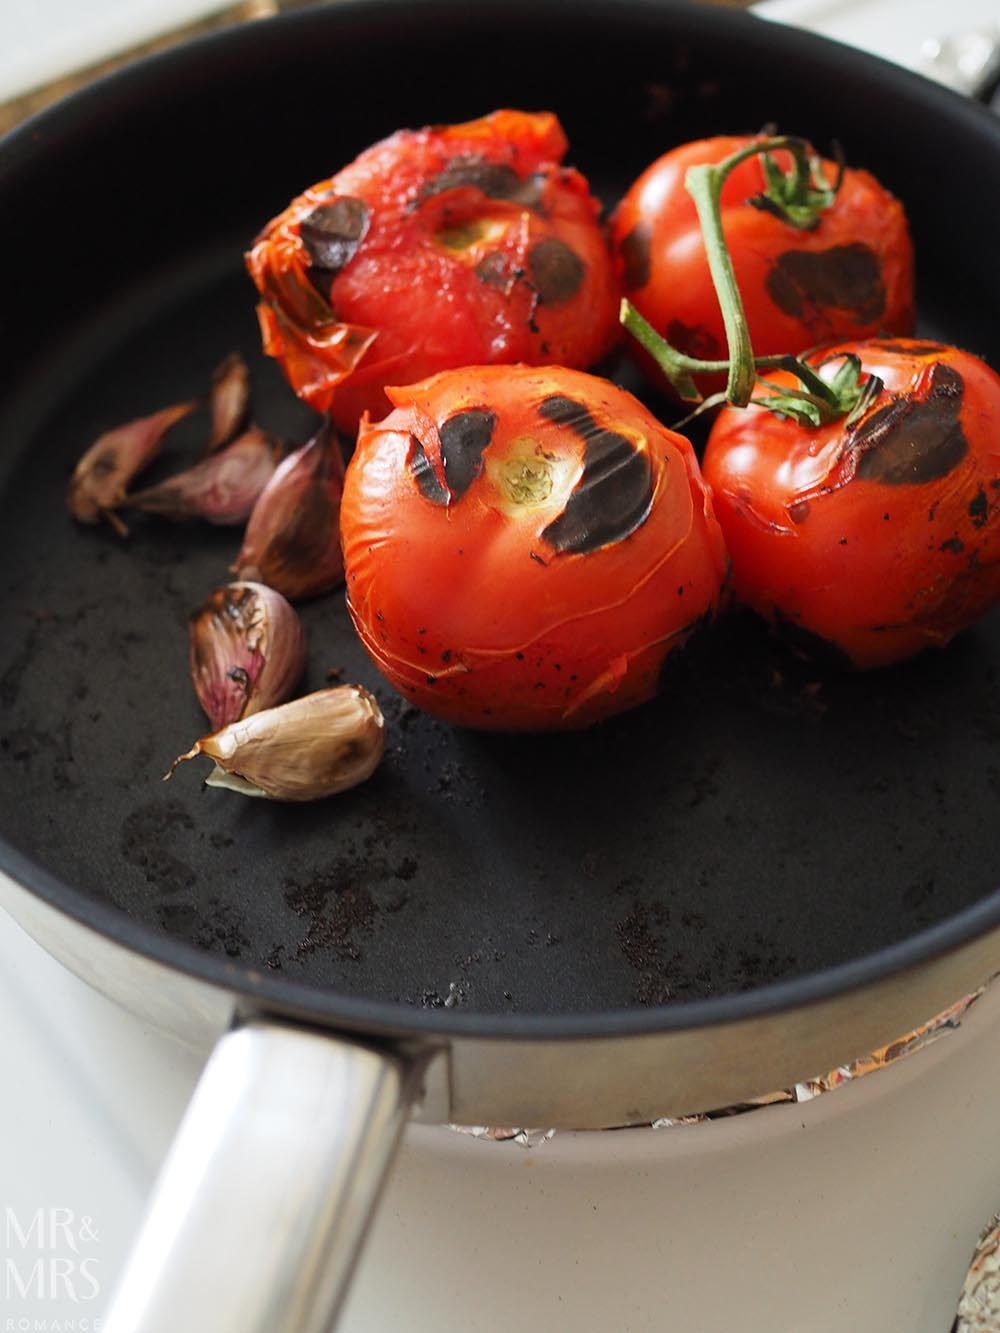 Carne con chilli recipe - Rick Stein Mexican food - charring tomatoes and garlic